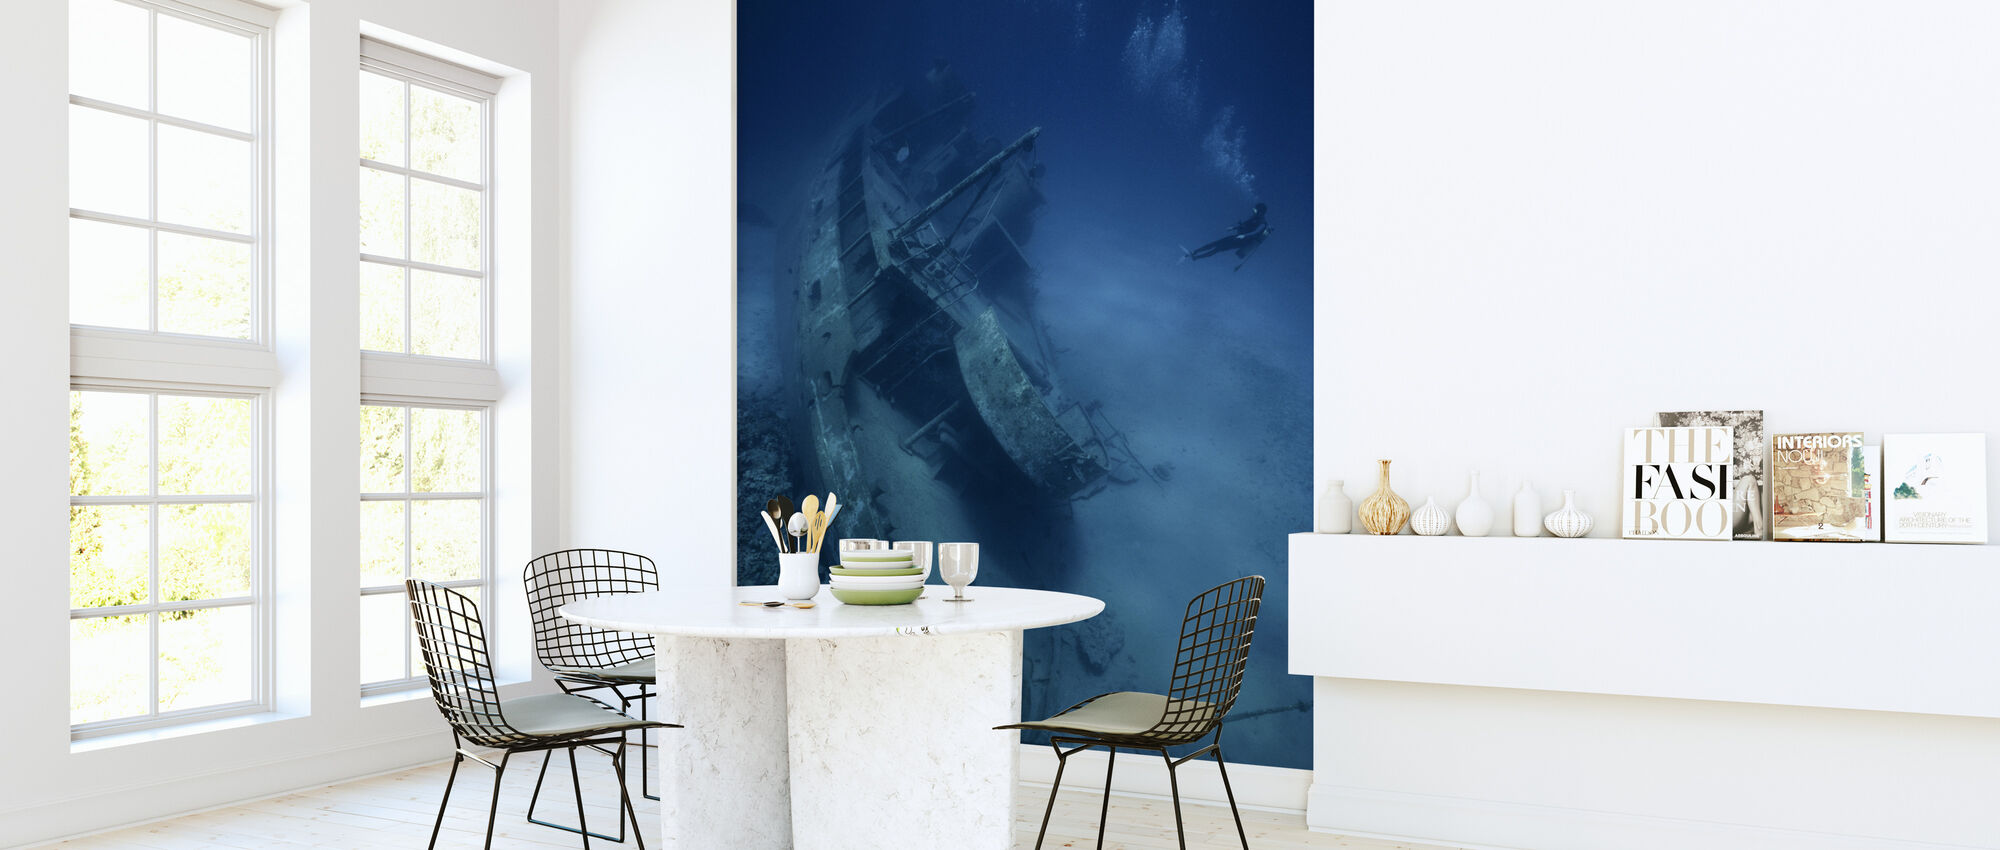 Shipwreck and Diver - Wallpaper - Kitchen